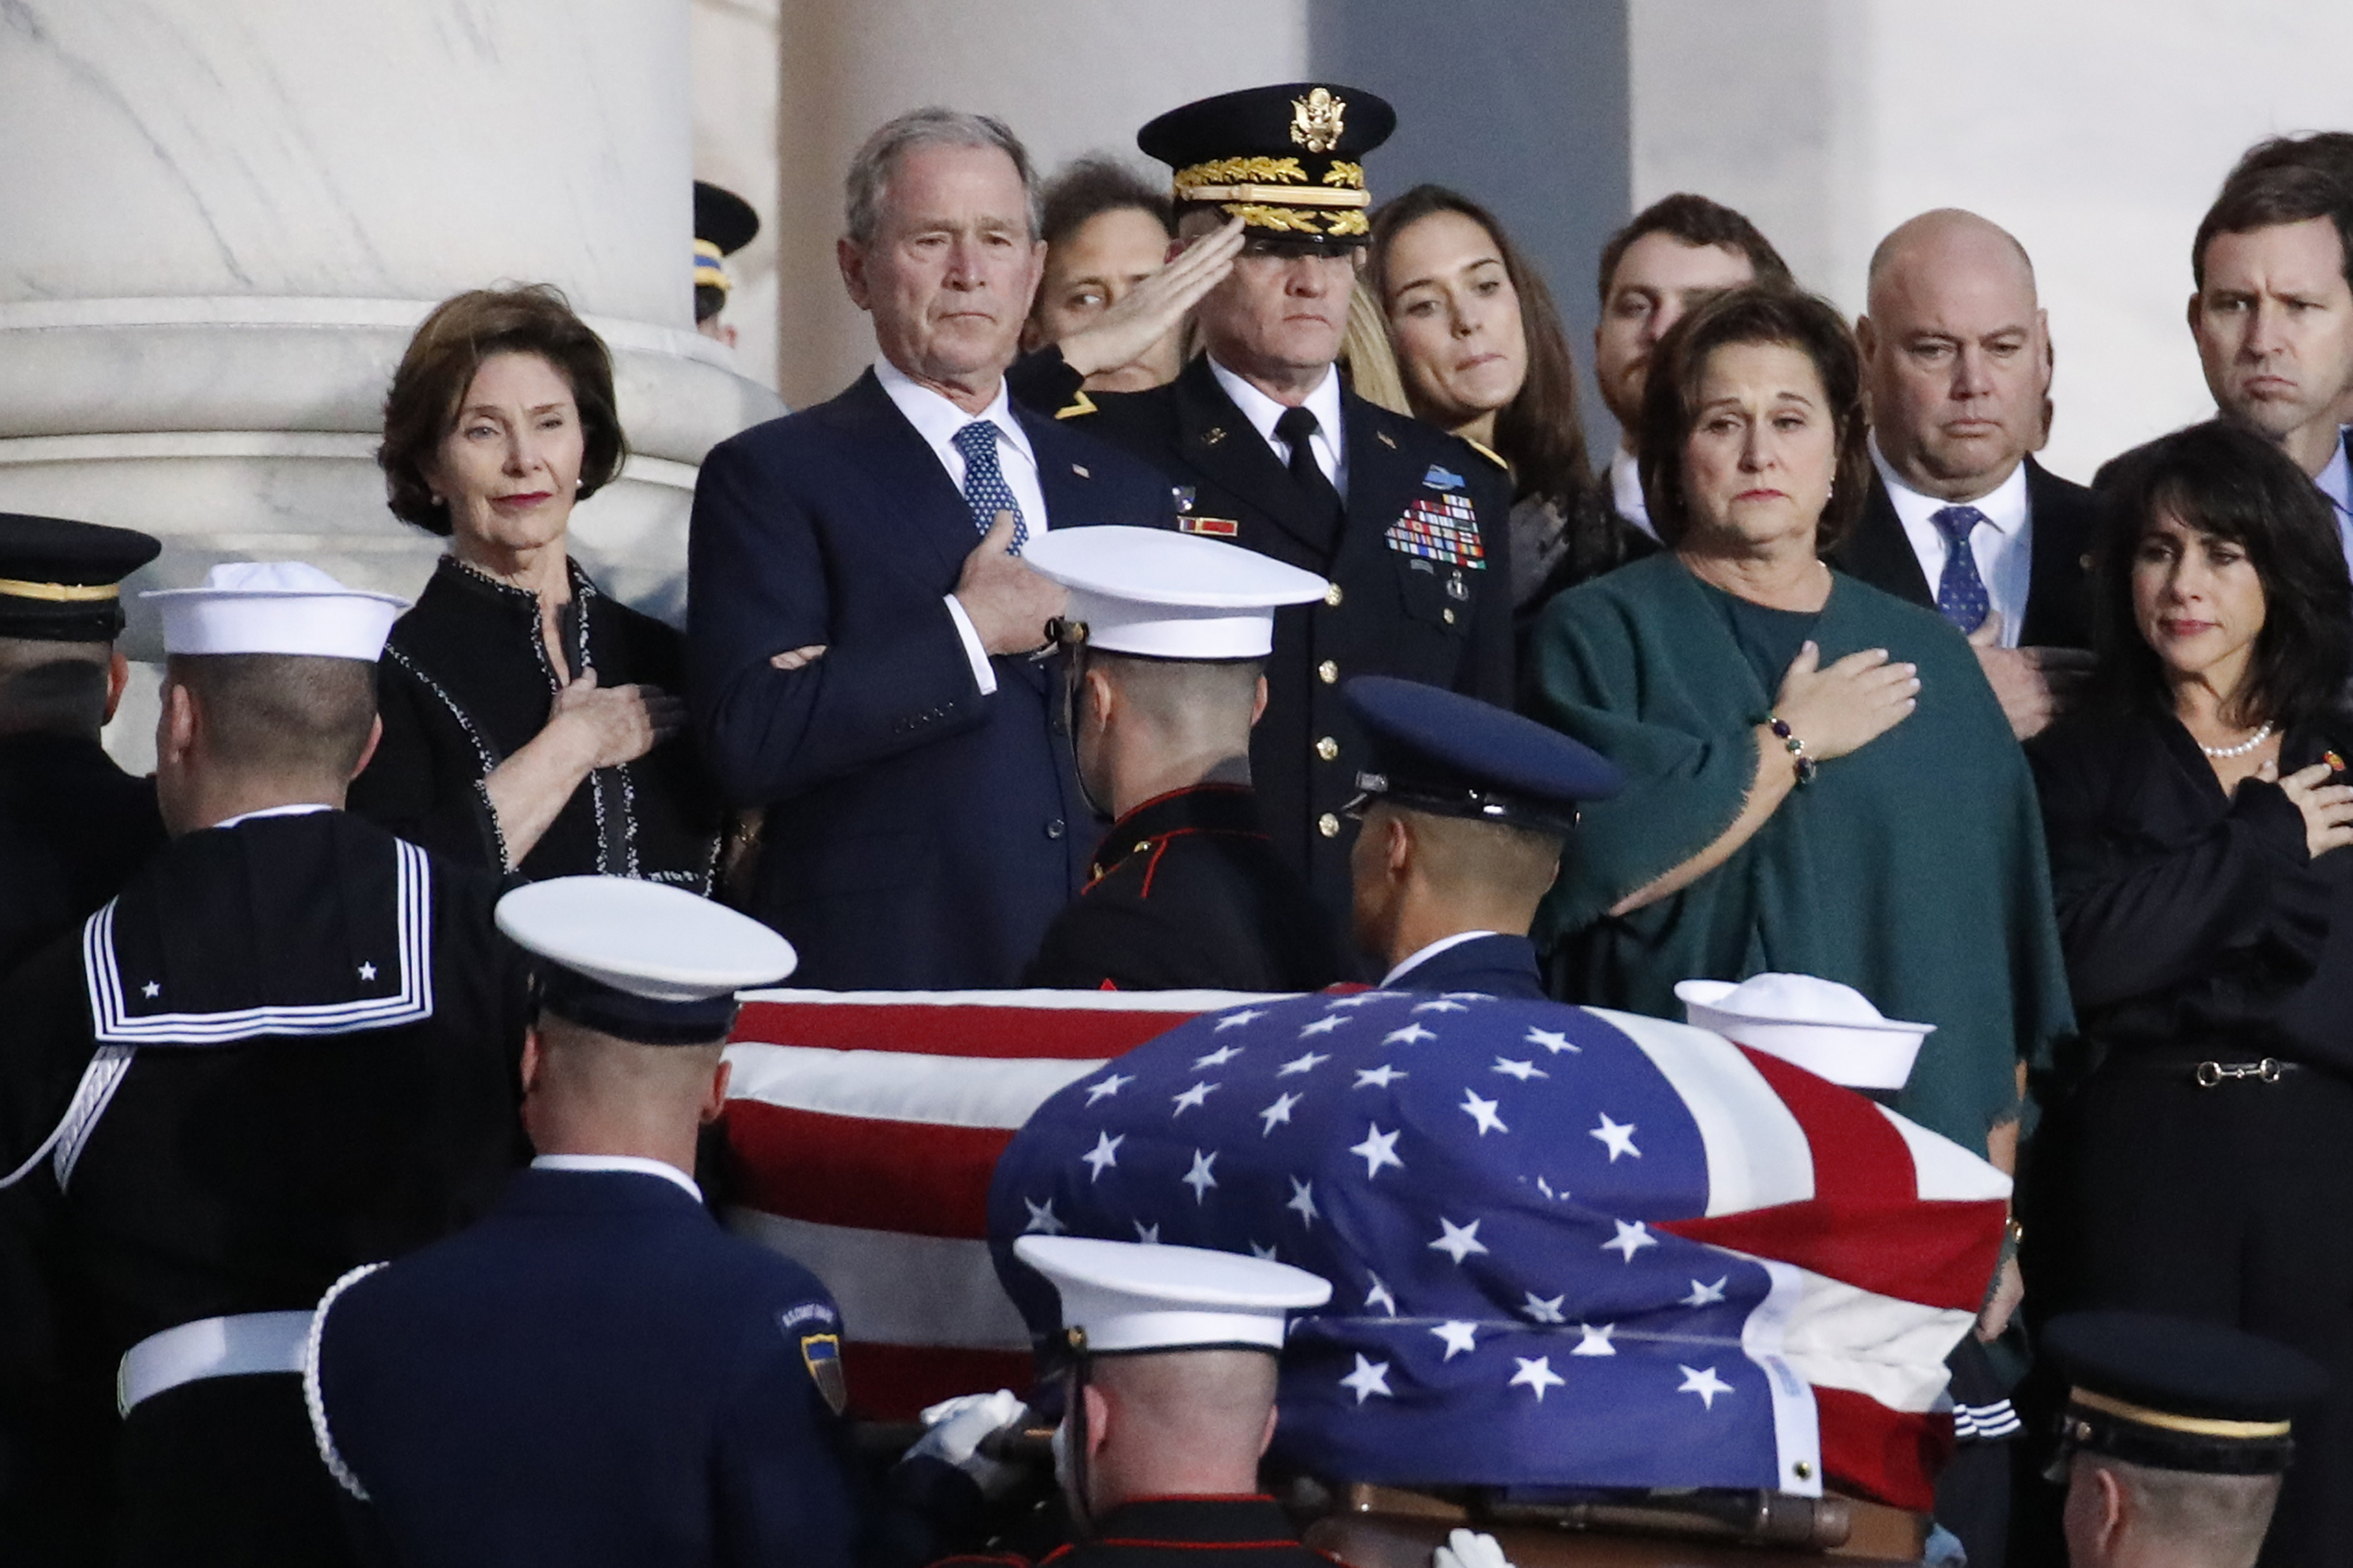 Former President George W. Bush, Laura Bush, left, and other family members watch as the flag-draped casket of former President George H.W. Bush is carried by a joint services military honor guard to lie in state in the rotunda of the U.S. Capitol, Monday, Dec. 3, 2018, in Washington.